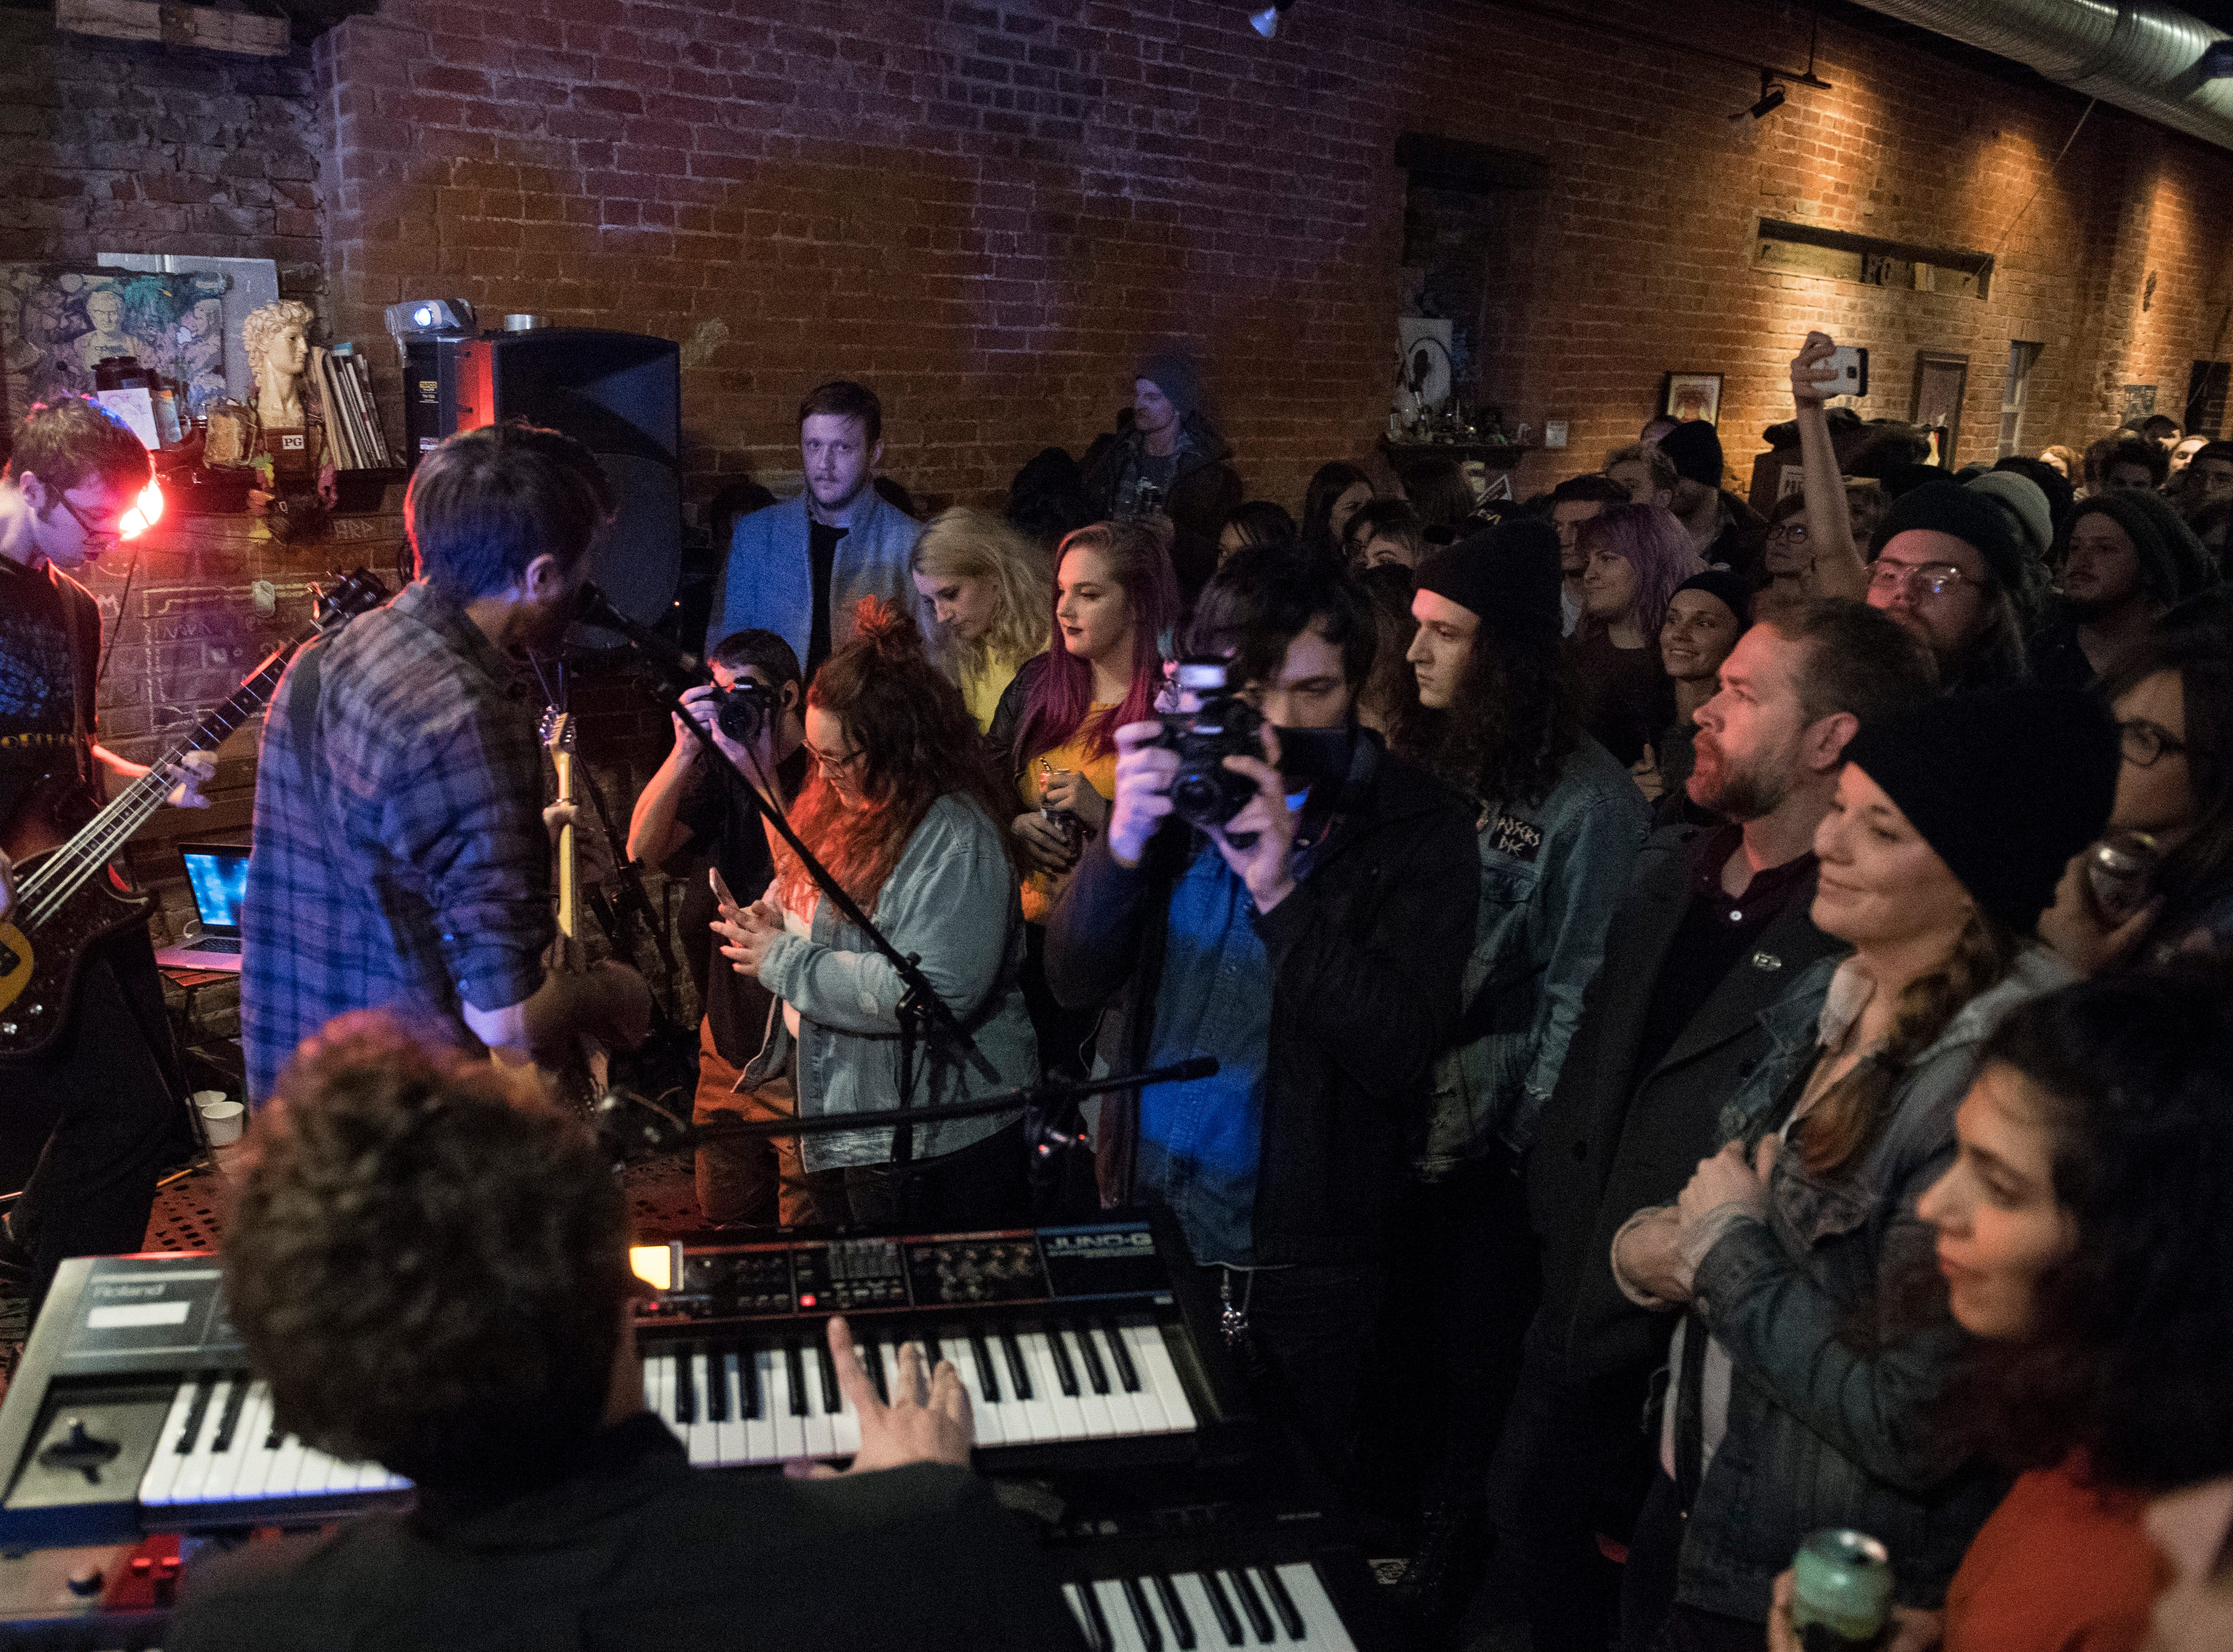 People pack the room at PG as Thunder Dreamer plays during the Farewell Weekend show Saturday, Dec. 29, 2018. PG -- a cafe, art and music venue -- opened March 15, 2013, and has served as a gathering place for the creative community in Evansville. Their final day open is Monday, Dec. 31, 2018.